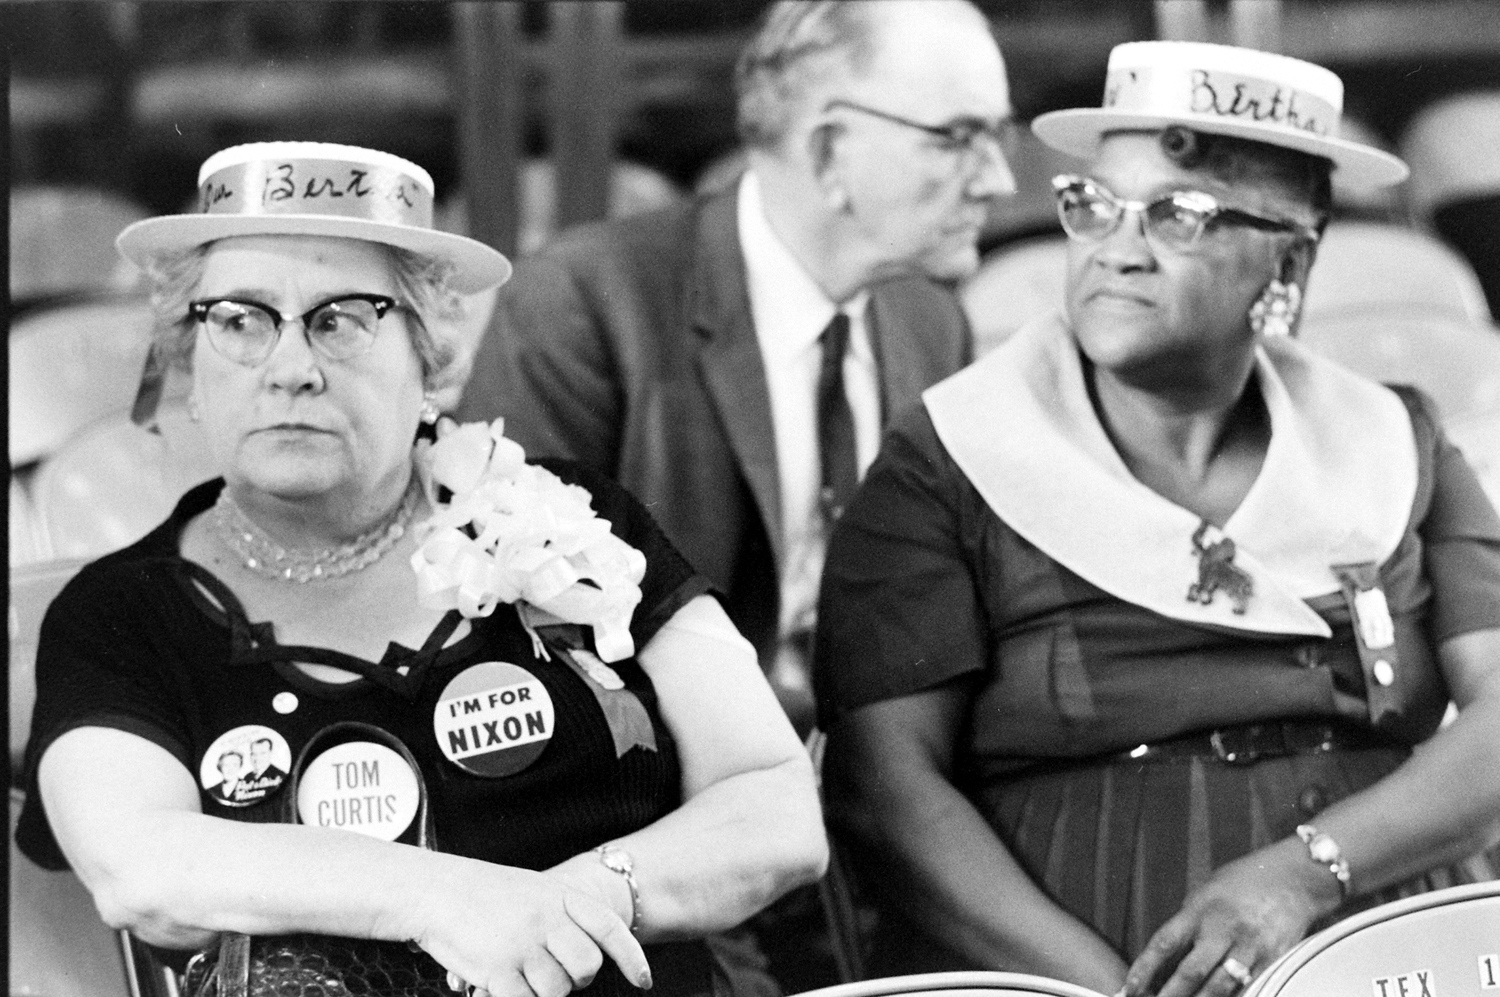 Scene during the 1960 Republican National Convention in Chicago.